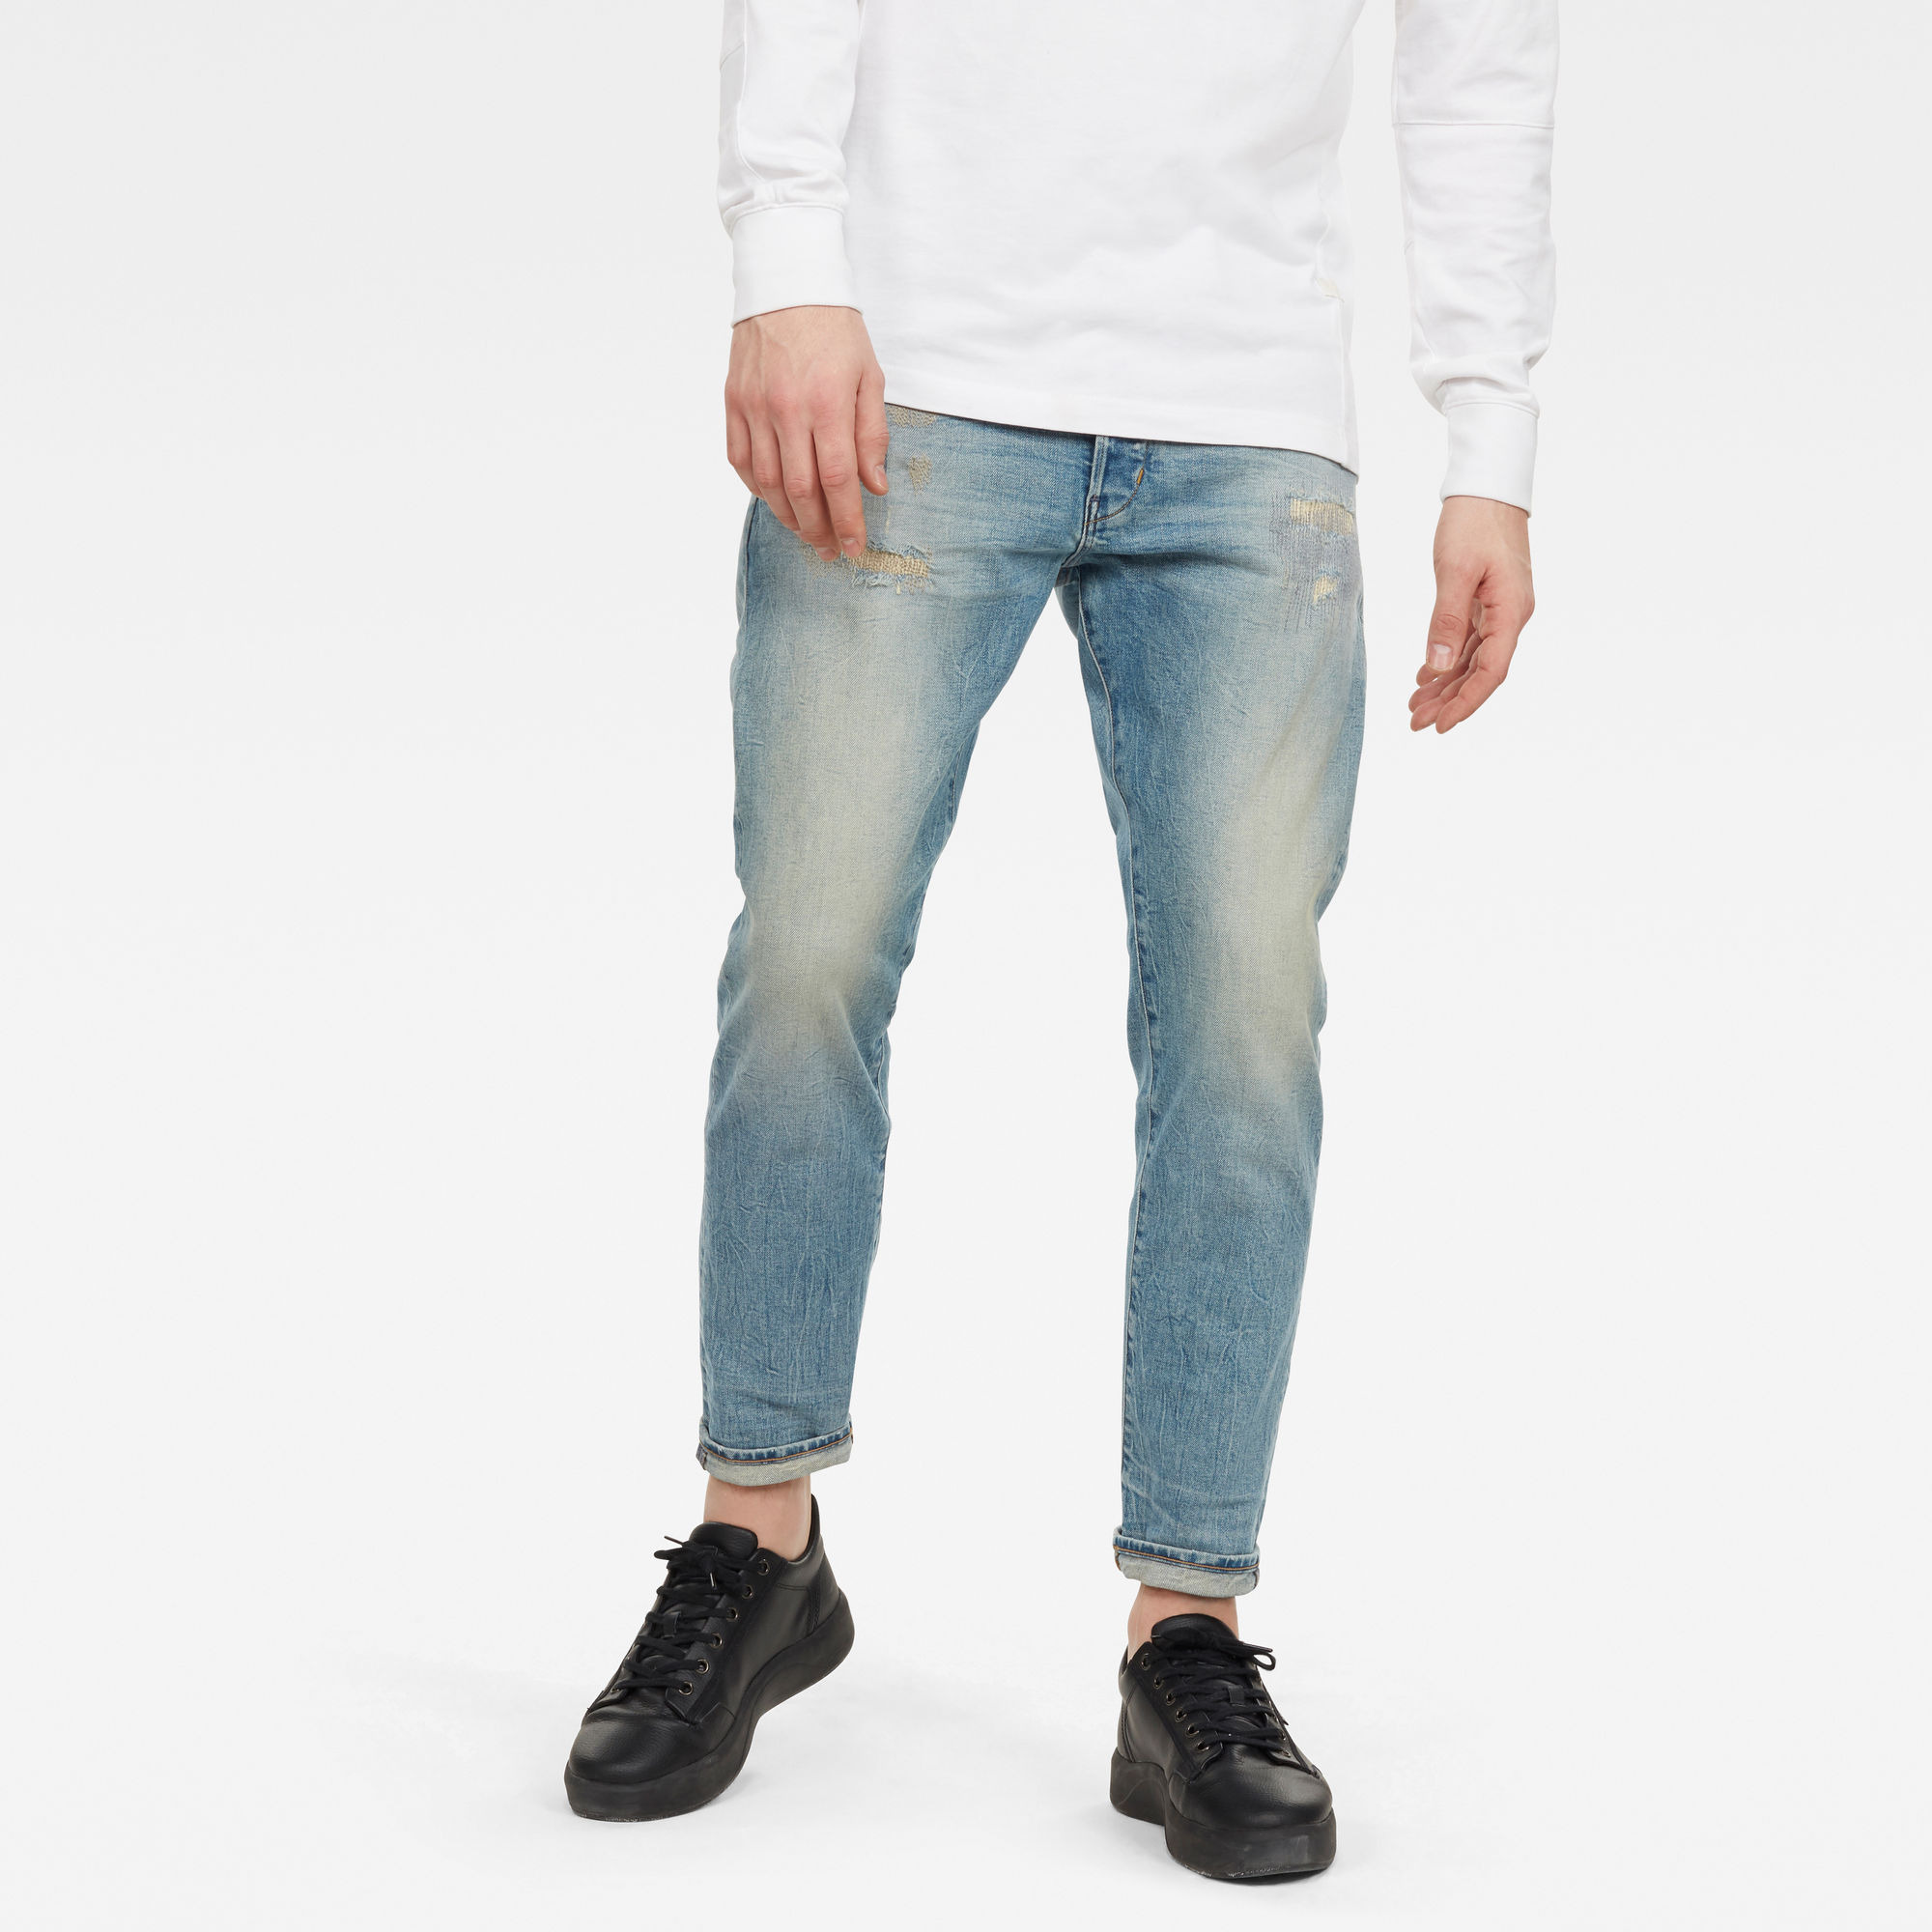 G-Star RAW Mujer Jeans Loic Relaxed Tapered Azul claro